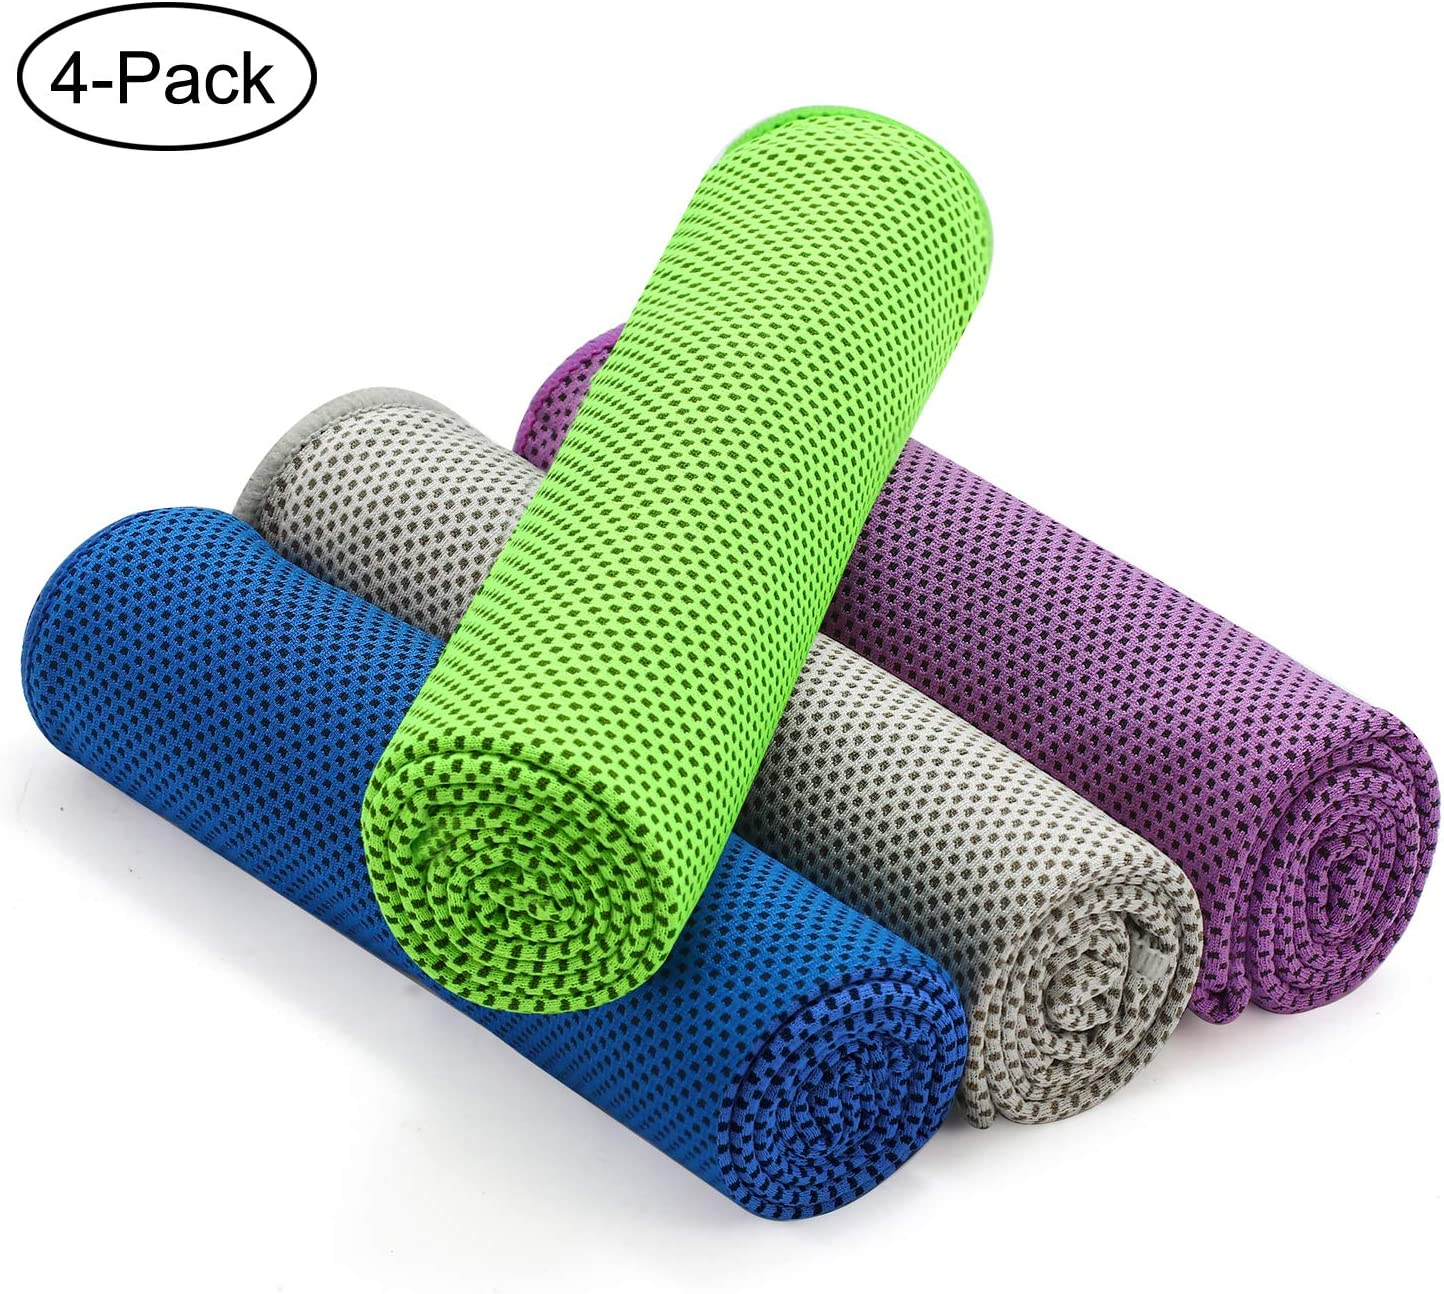 """foramor Cooling Towel 4 Packs,Ice Towel for Neck,Microfiber Towel Soft Breathable Chilly Towel 40""""x12""""for Yoga, Sports, Camping, Fitness, Gym, Workout,Camping & More"""